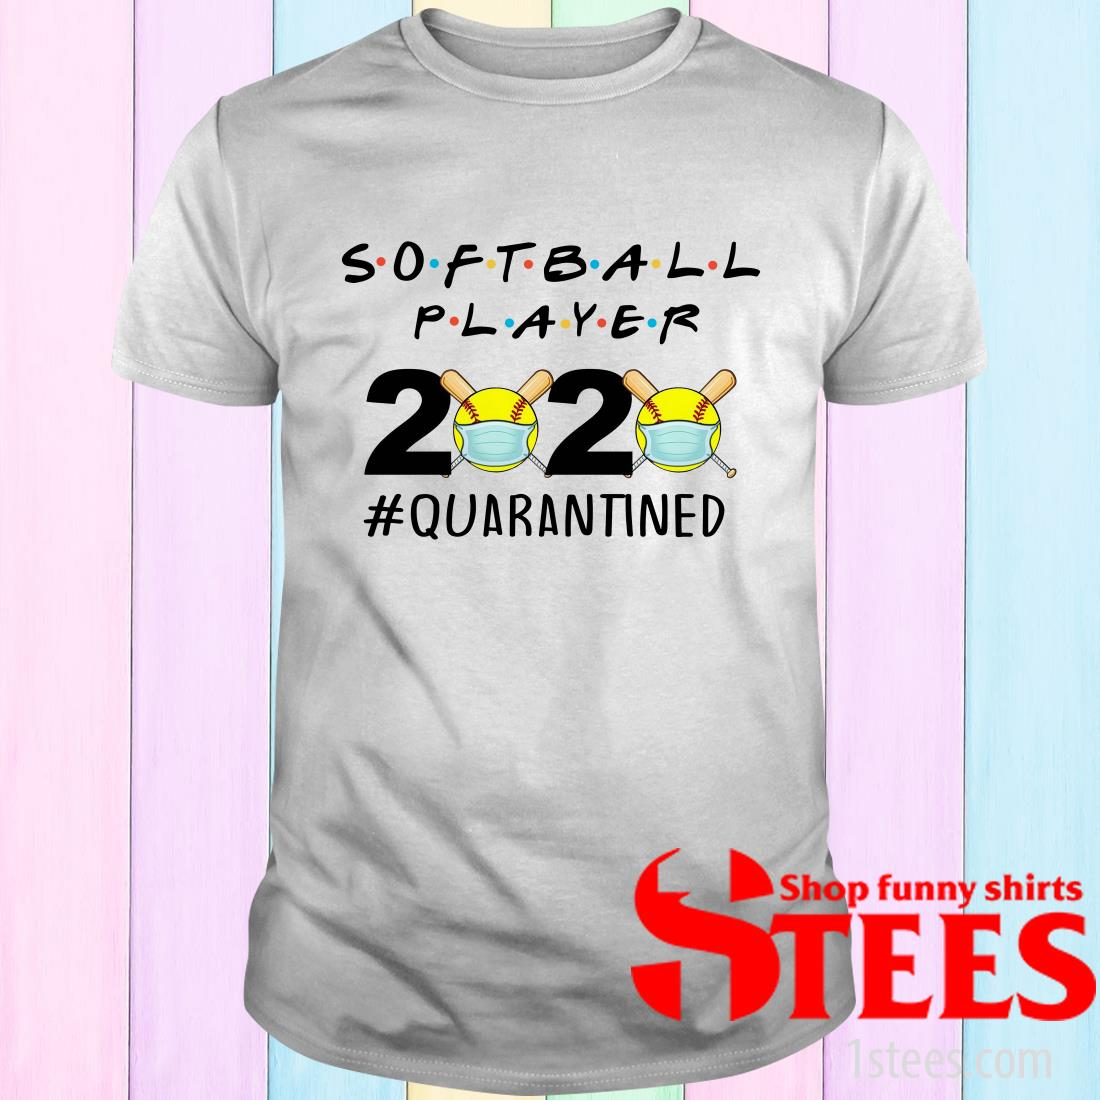 Softball player 2020 Quarantined T-Shirt